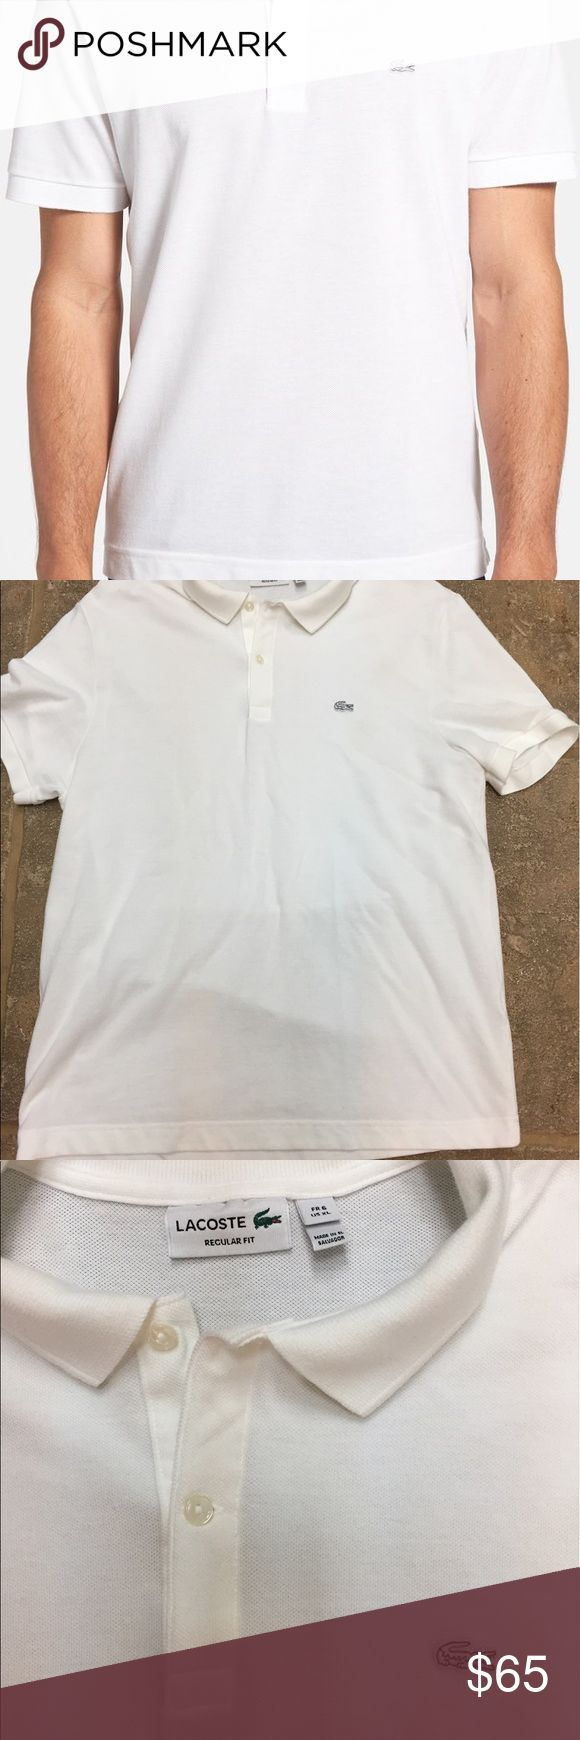 Lacoste men's white pique polo shirt regular fit A white crocodile emblem at the chest brands a classic pique cotton polo shirt.,2 button placket 100% cotton. Size 6. New without tags. Lacoste Shirts Polos